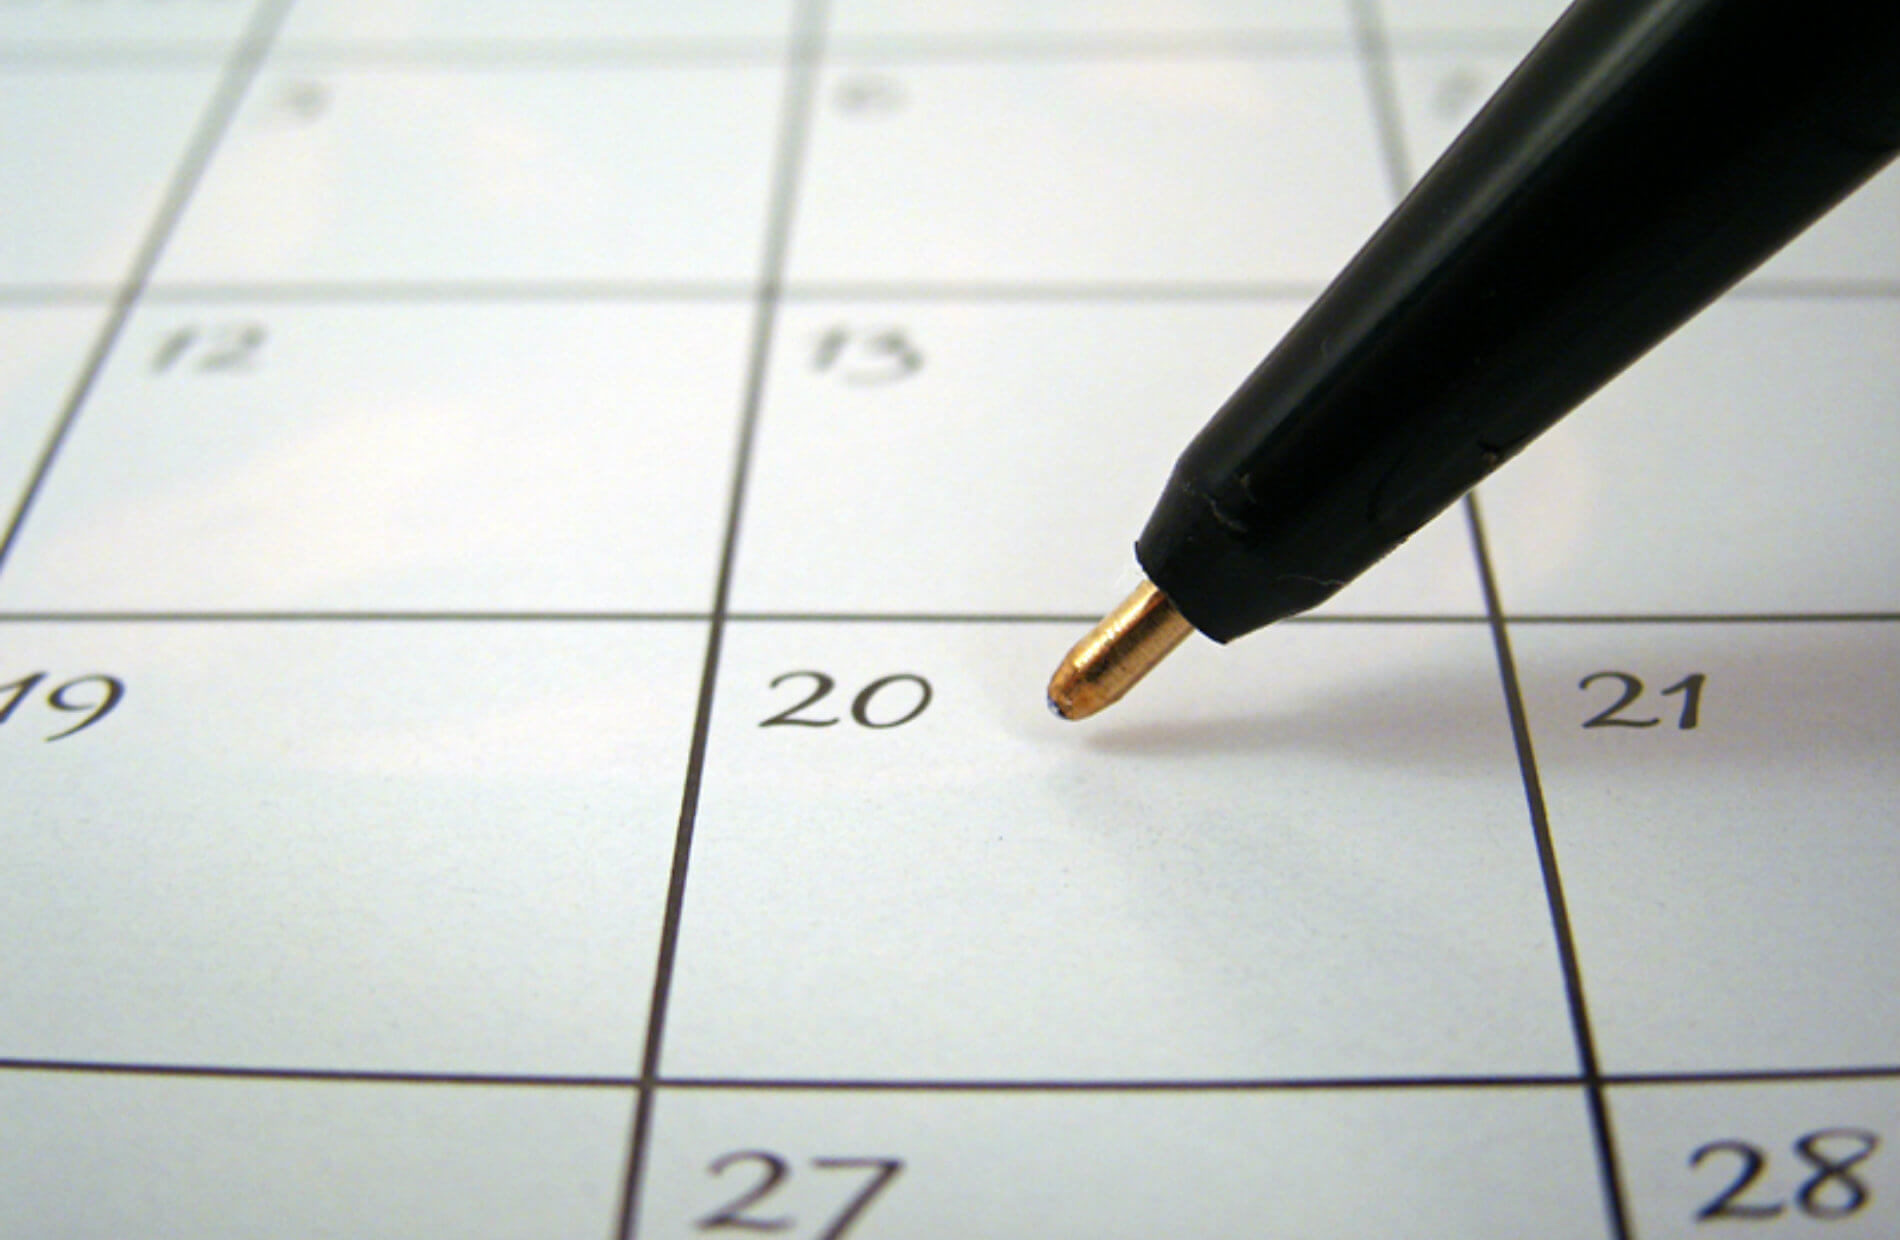 Black pen poised over the 20th on a calendar